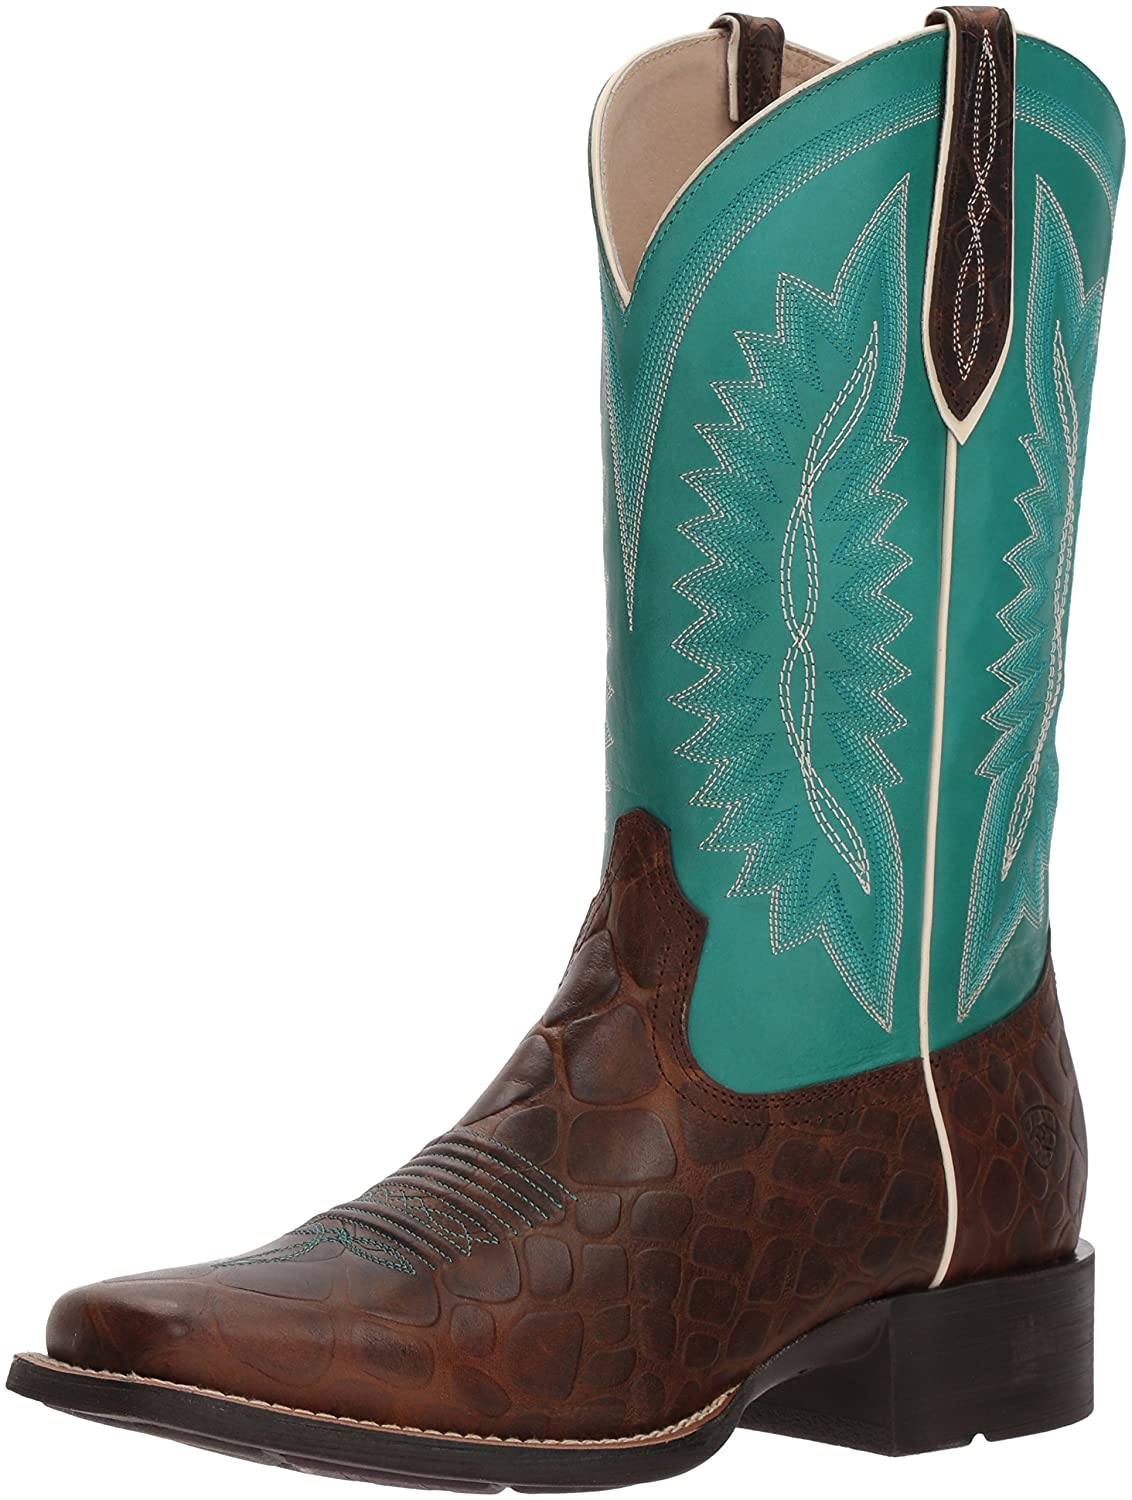 Ariat Women's Quickdraw Legacy Western Boot B076MG3BJH 10 B(M) US|Brown Rowdy Crocodile Print/Naturally Turquoise